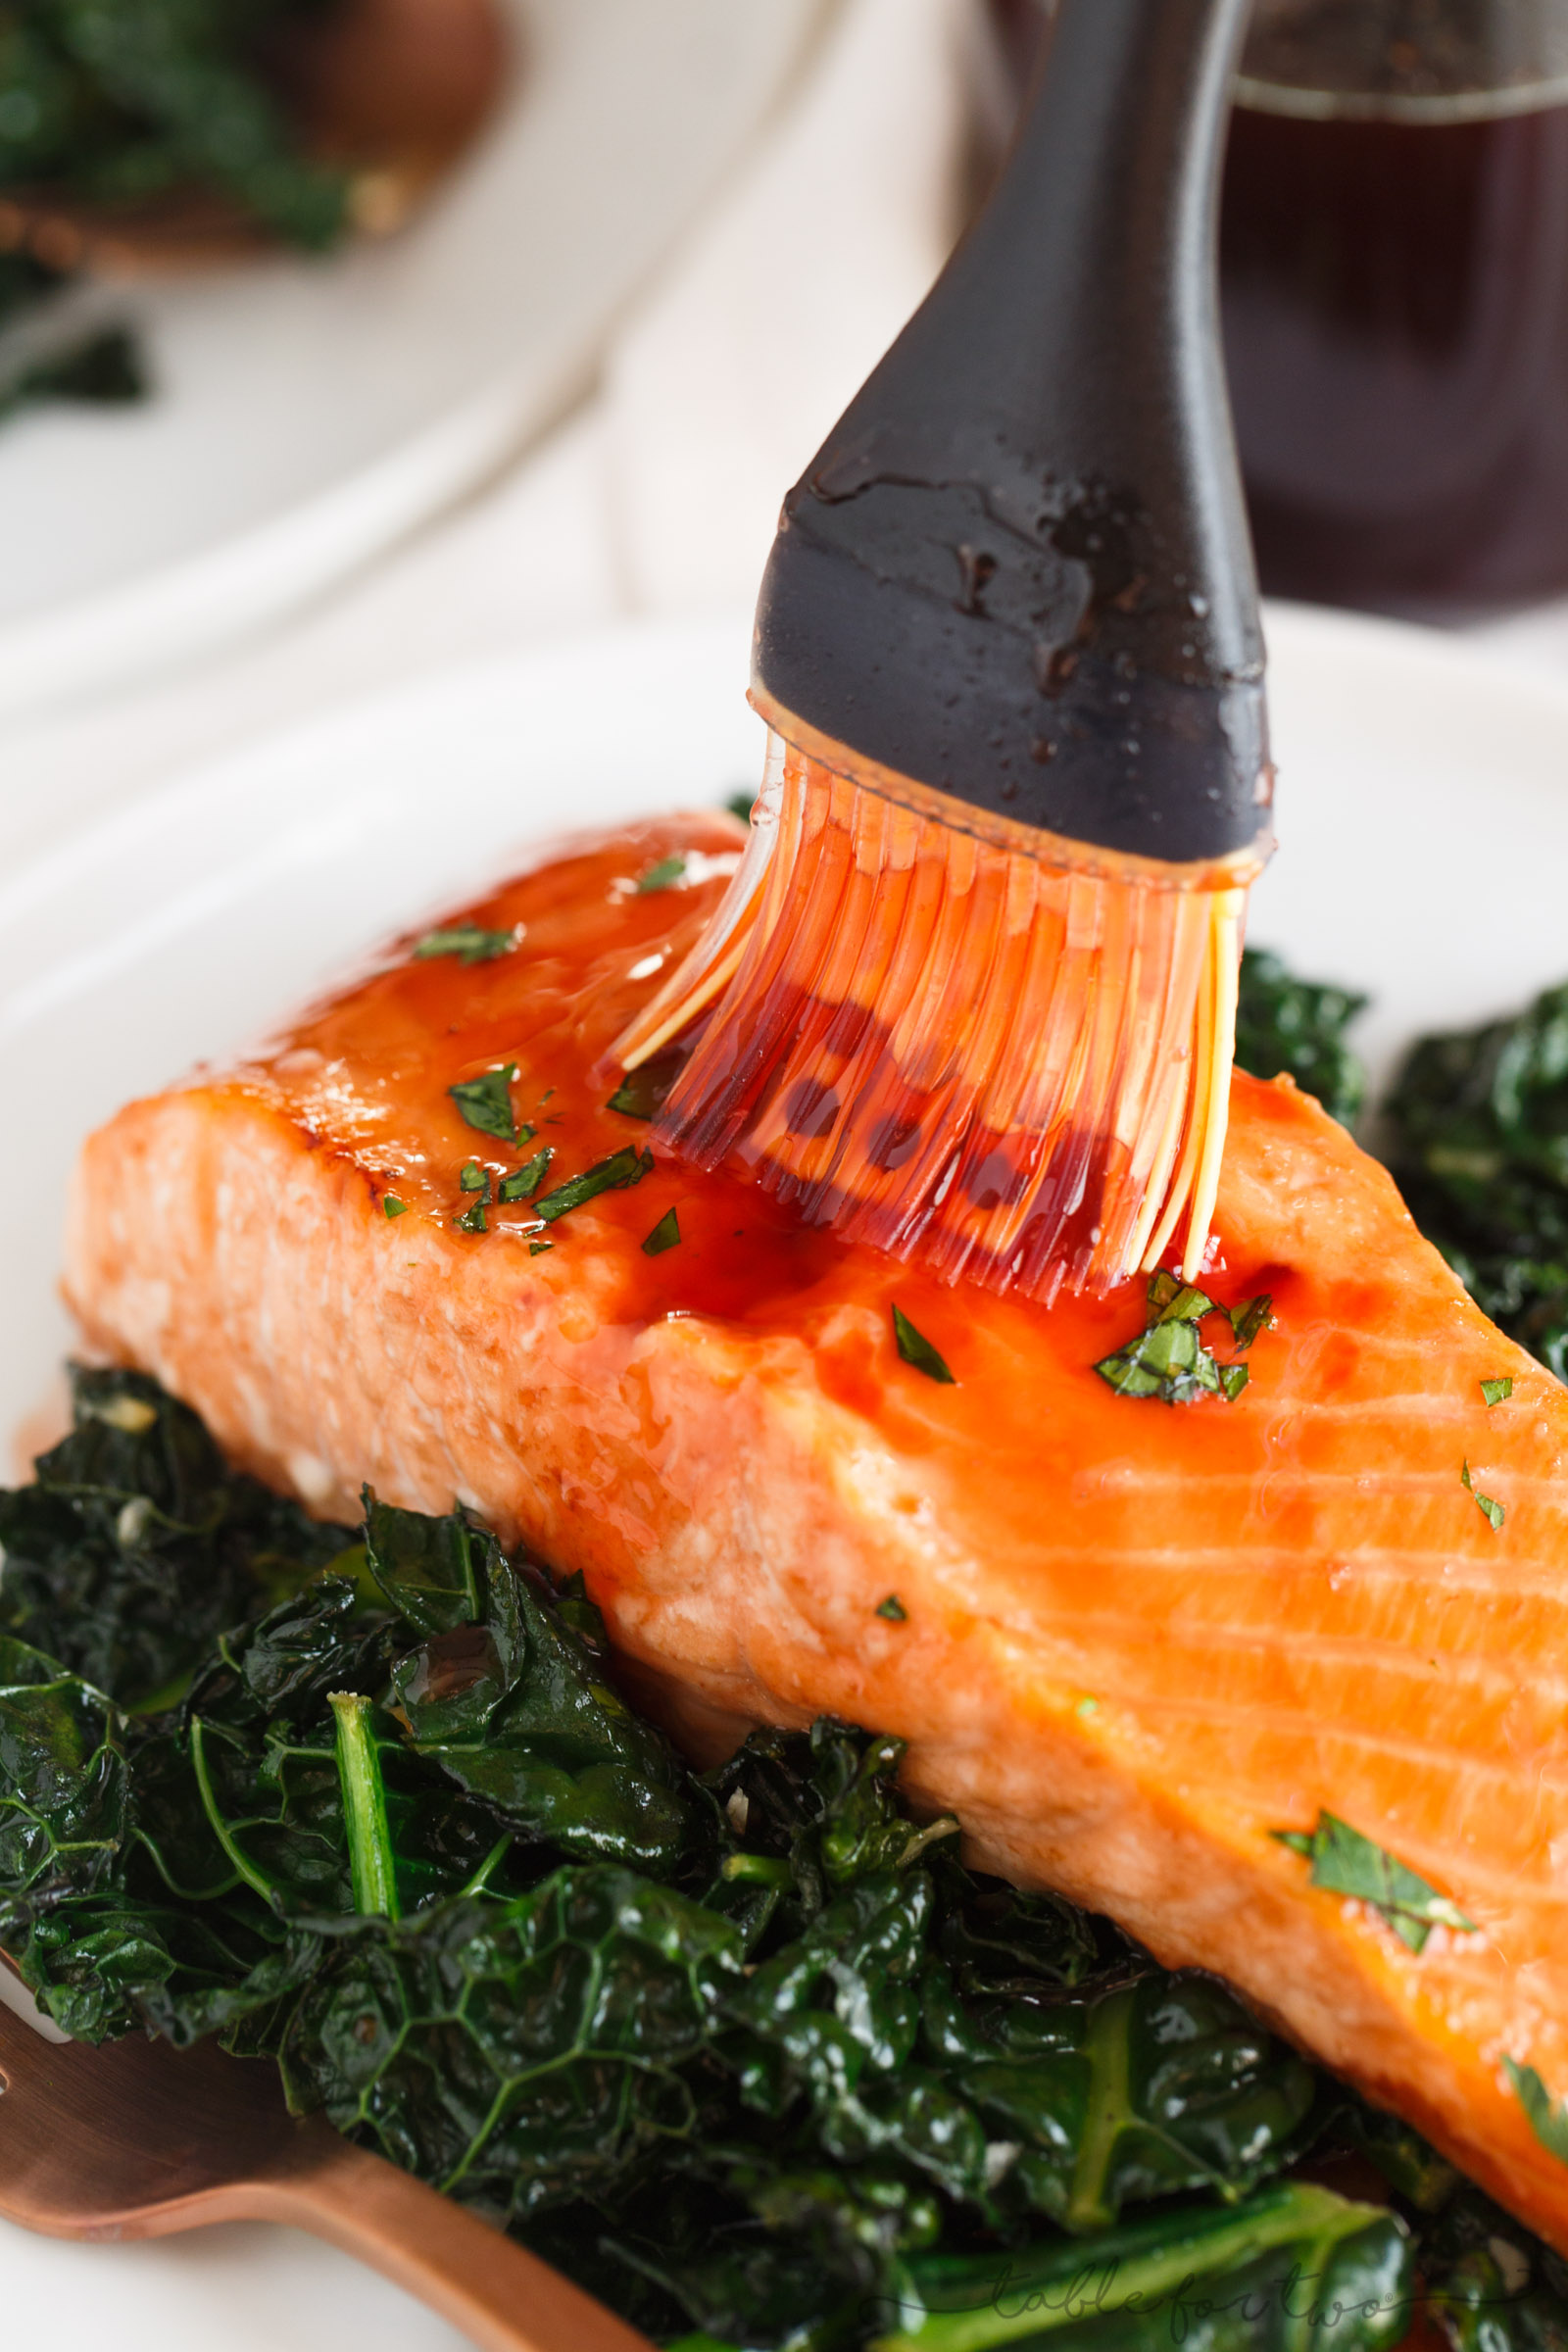 A sweet, tangy, and spicy glaze is generously topped on salmon in this cherry chipotle glazed salmon recipe! You'll discover how versatile this glaze is, as well!